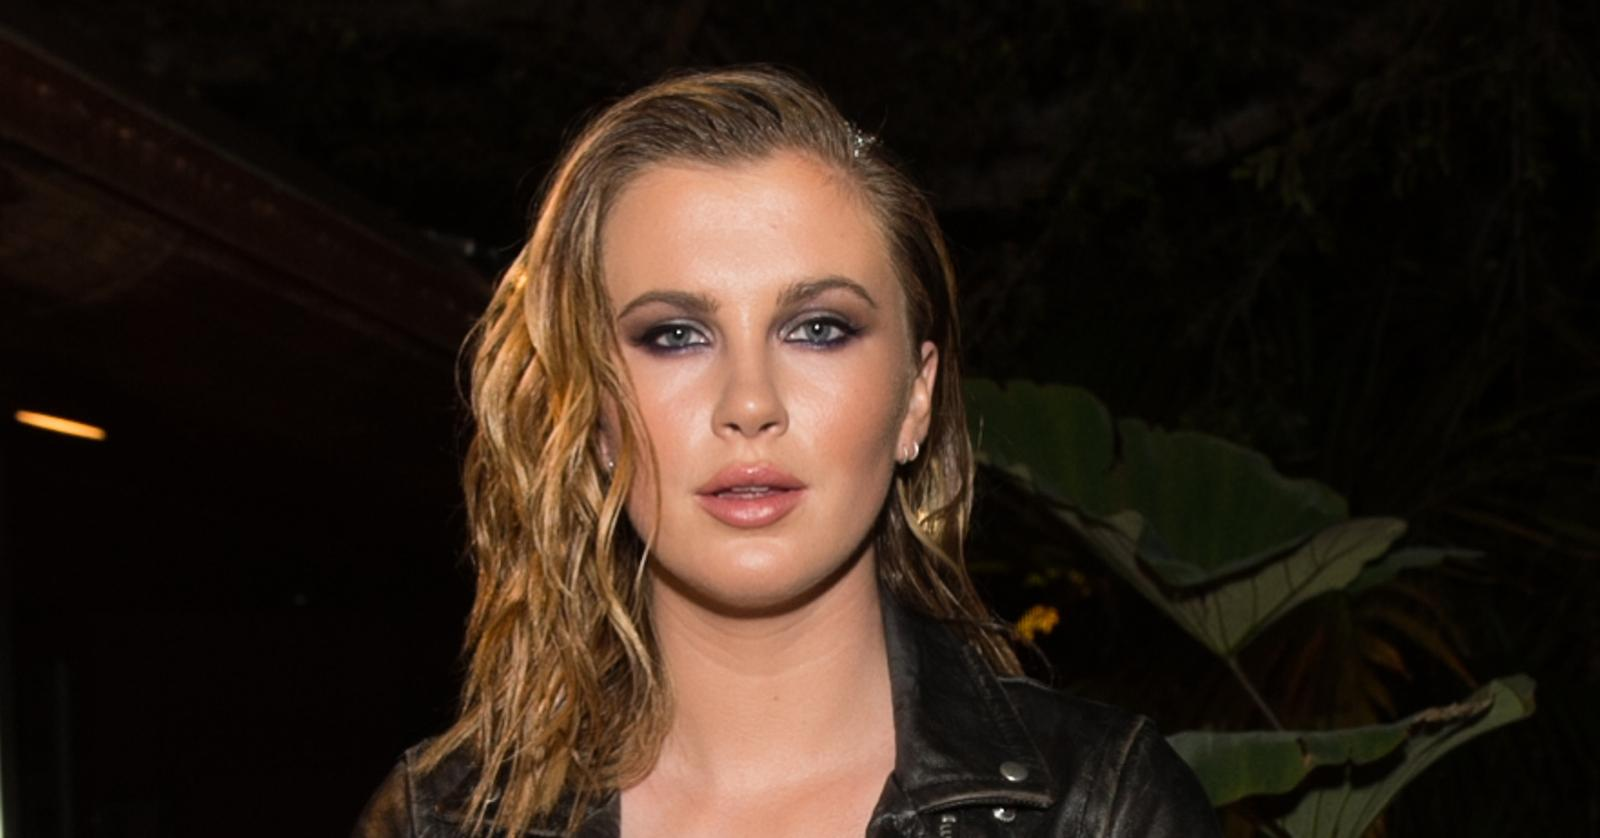 Bares All! Ireland Baldwin Goes Completely Nude In Beach